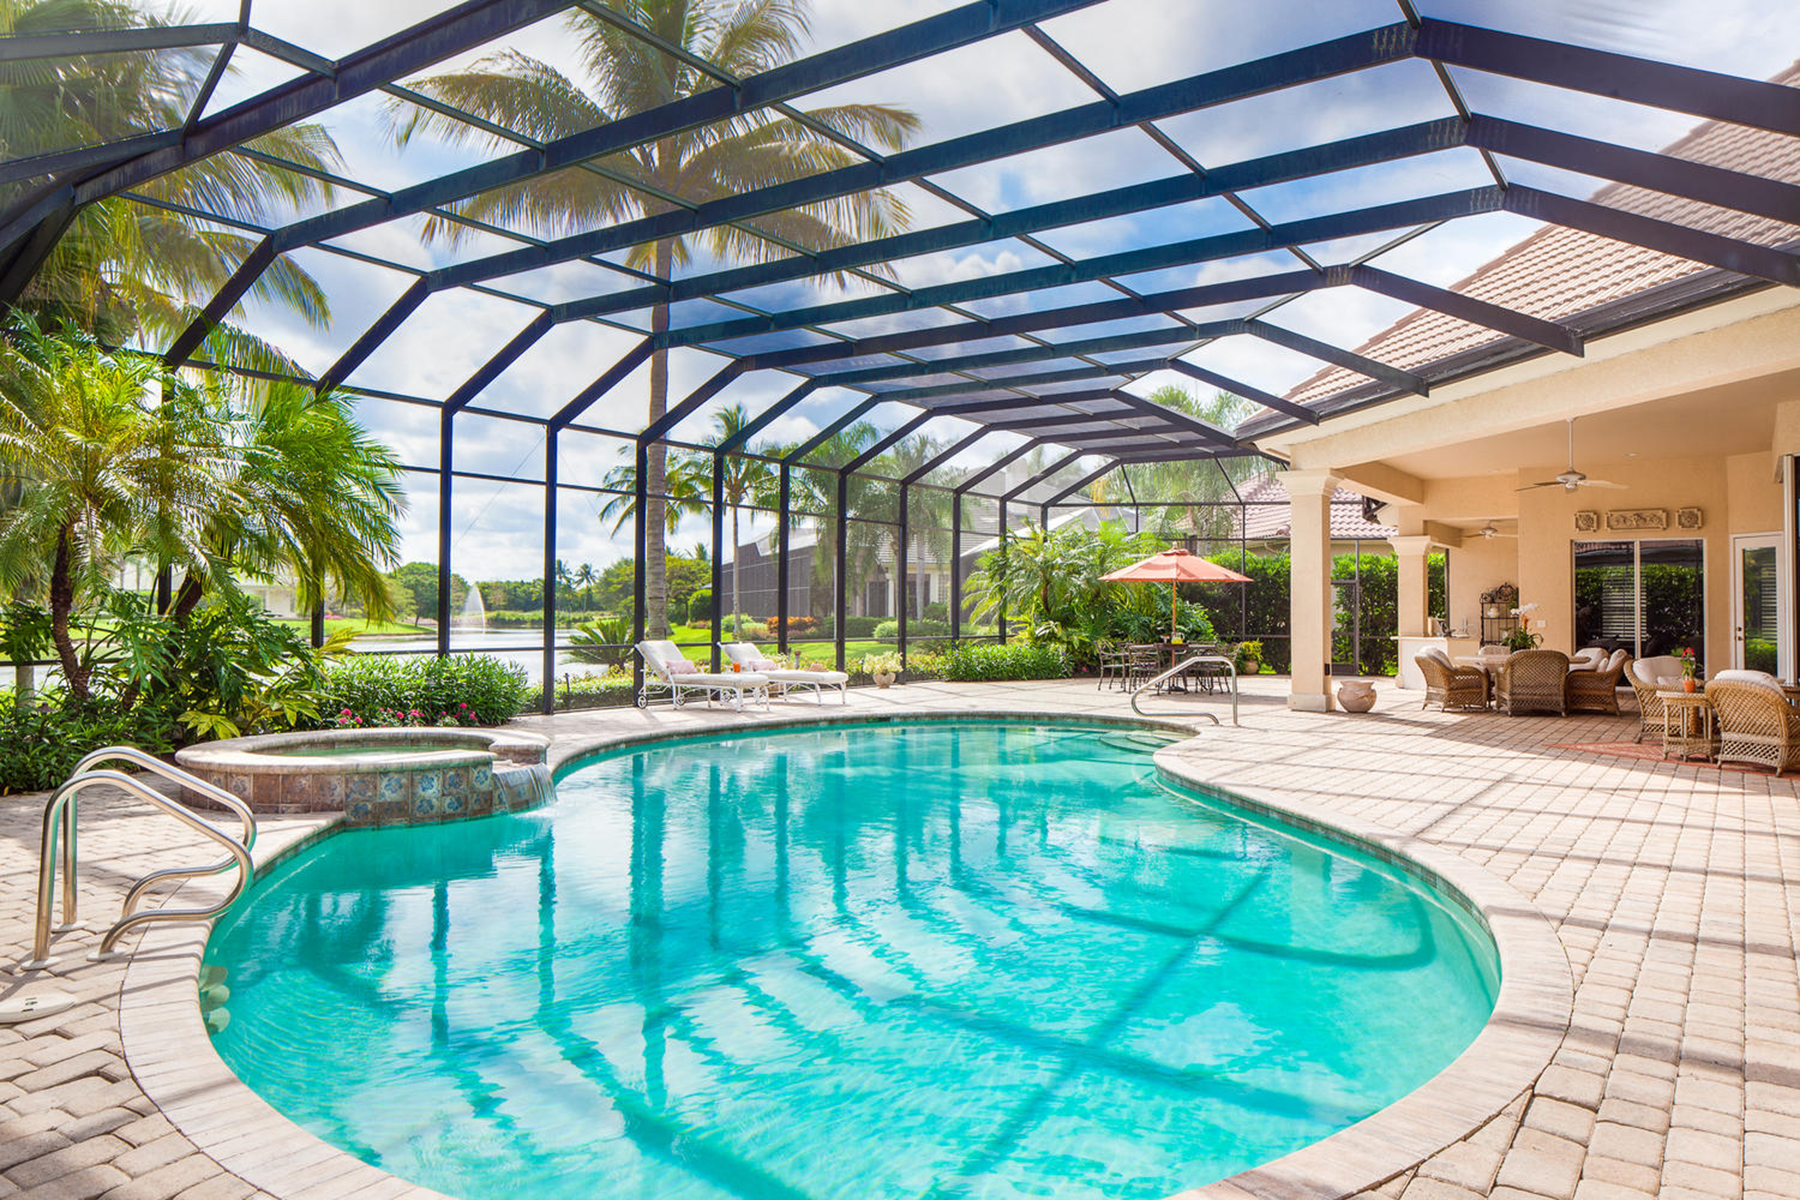 Single Family Home for Sale at PELICAN MARSH - MARSH LINKS 1708 Persimmon Dr Naples, Florida 34109 United States